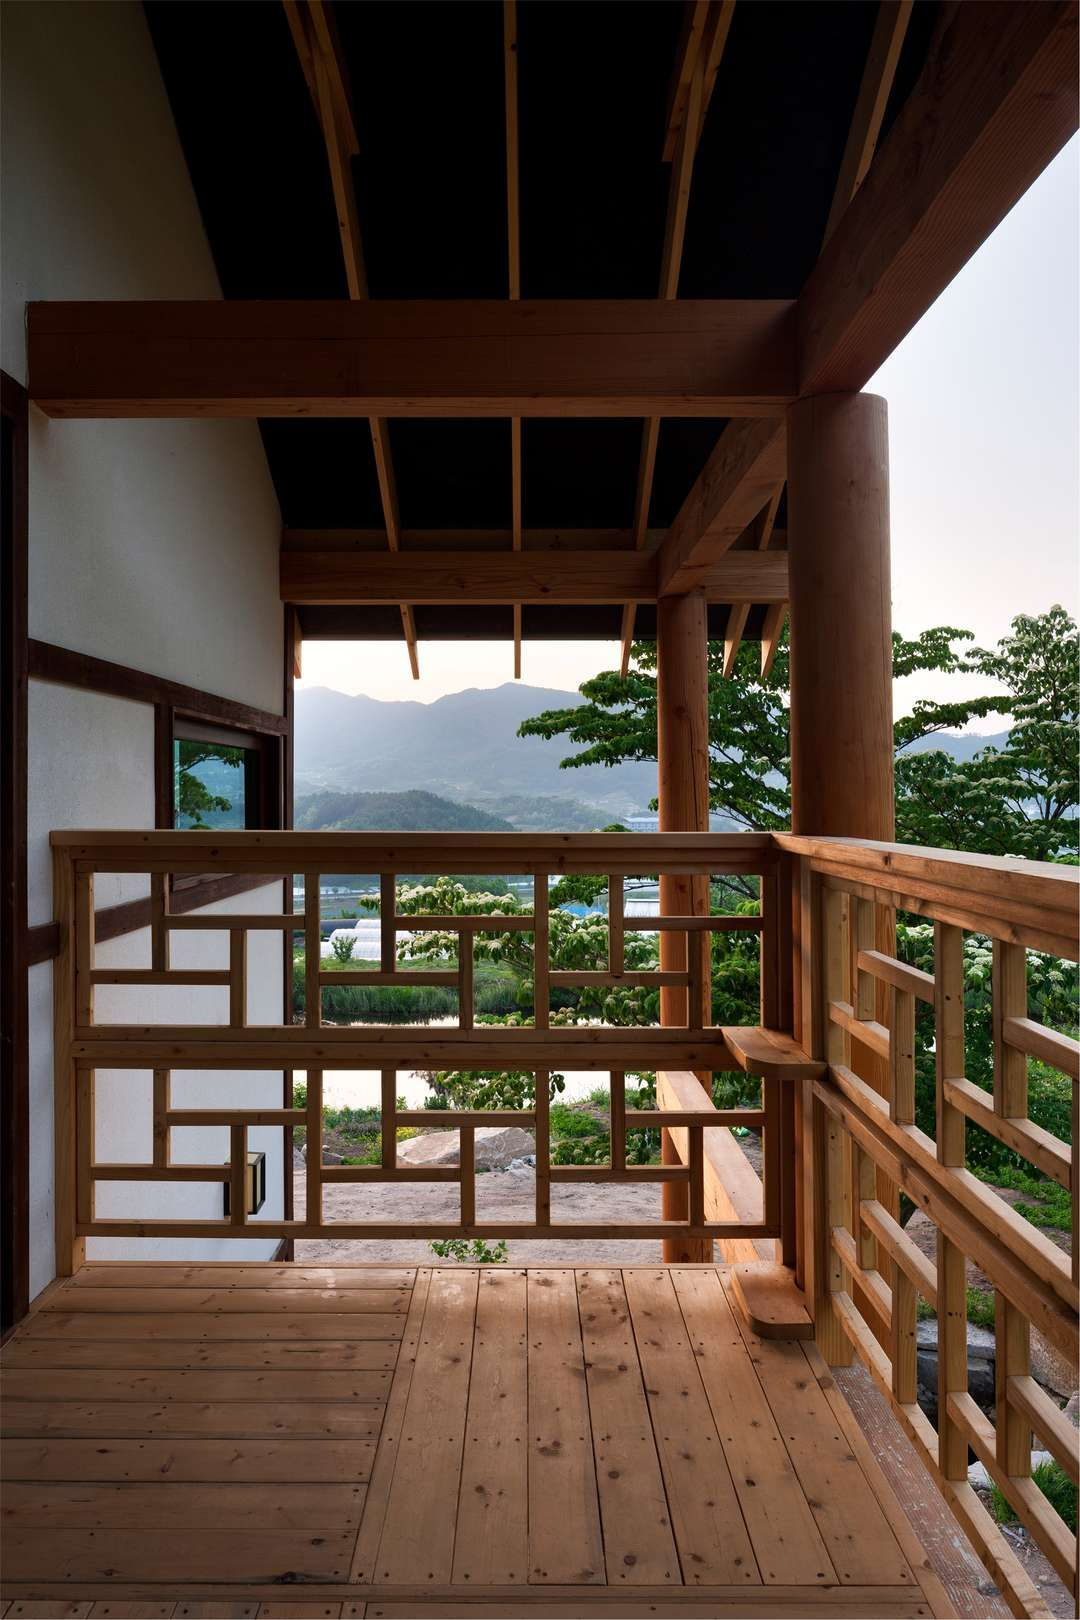 Neo traditional korean homes 6 modern updates on the vernacular style house in geochang